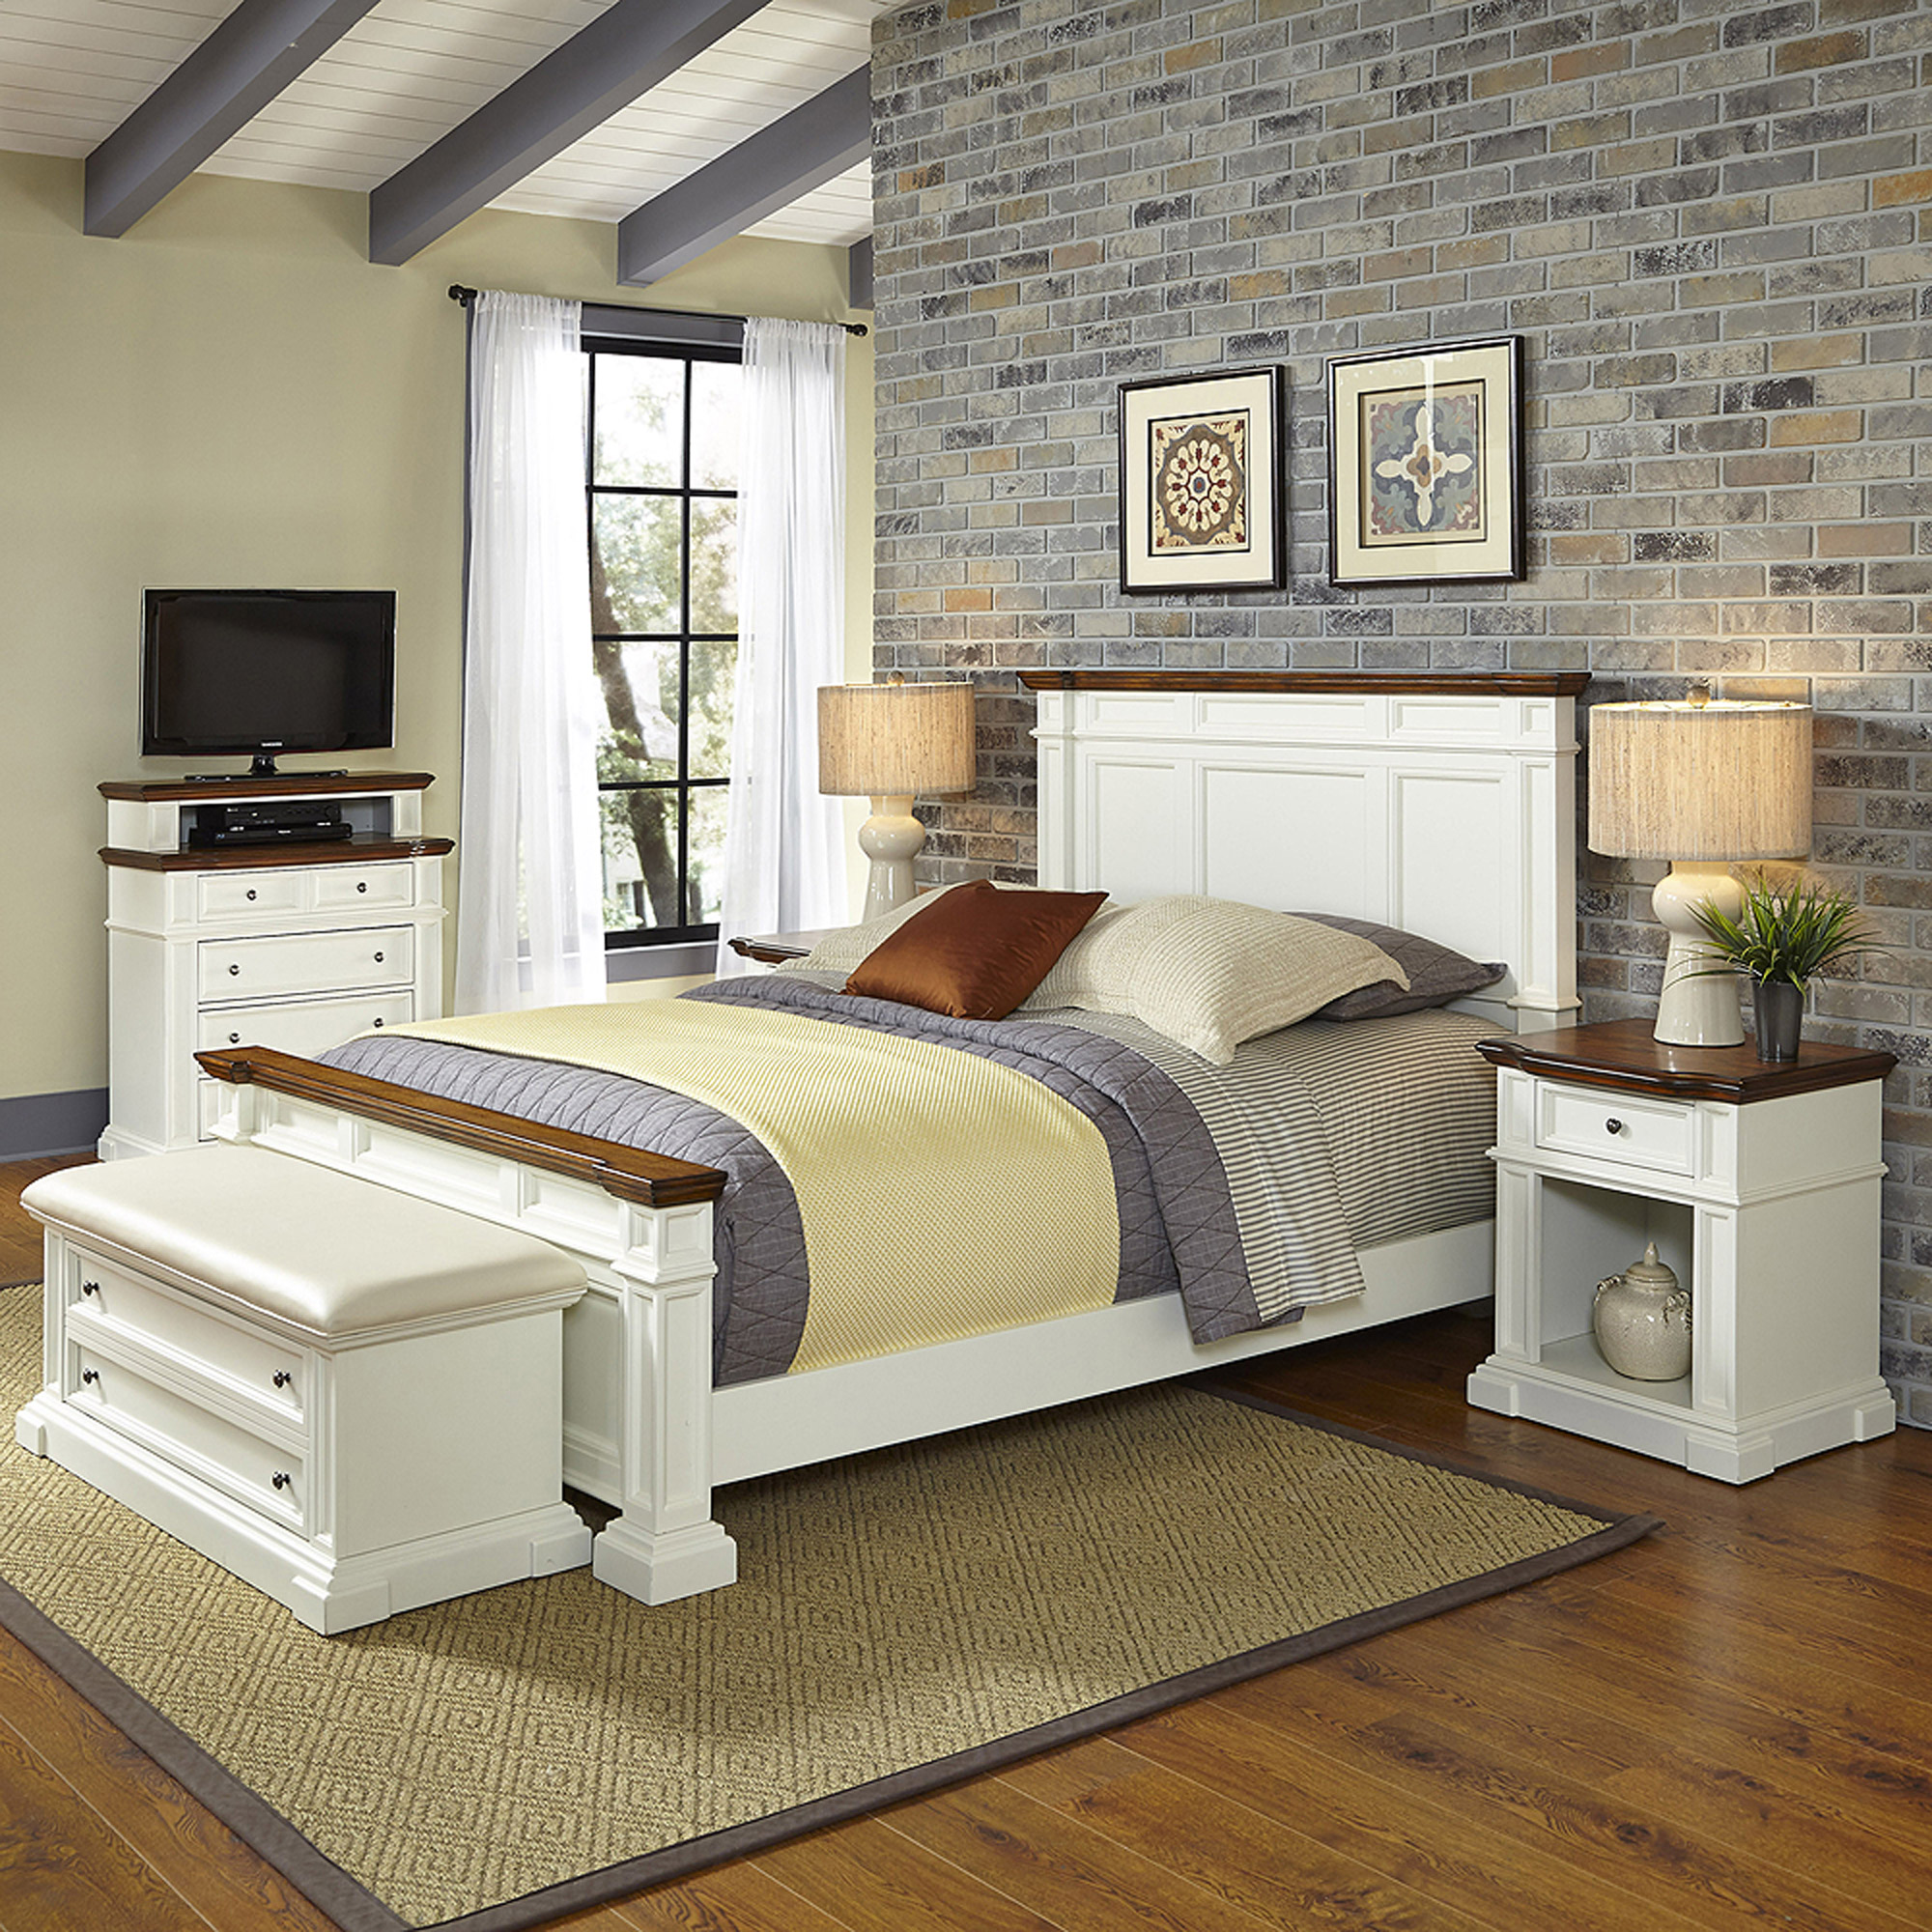 Home Styles Americana Bedroom Furniture Collection Antique White Finish